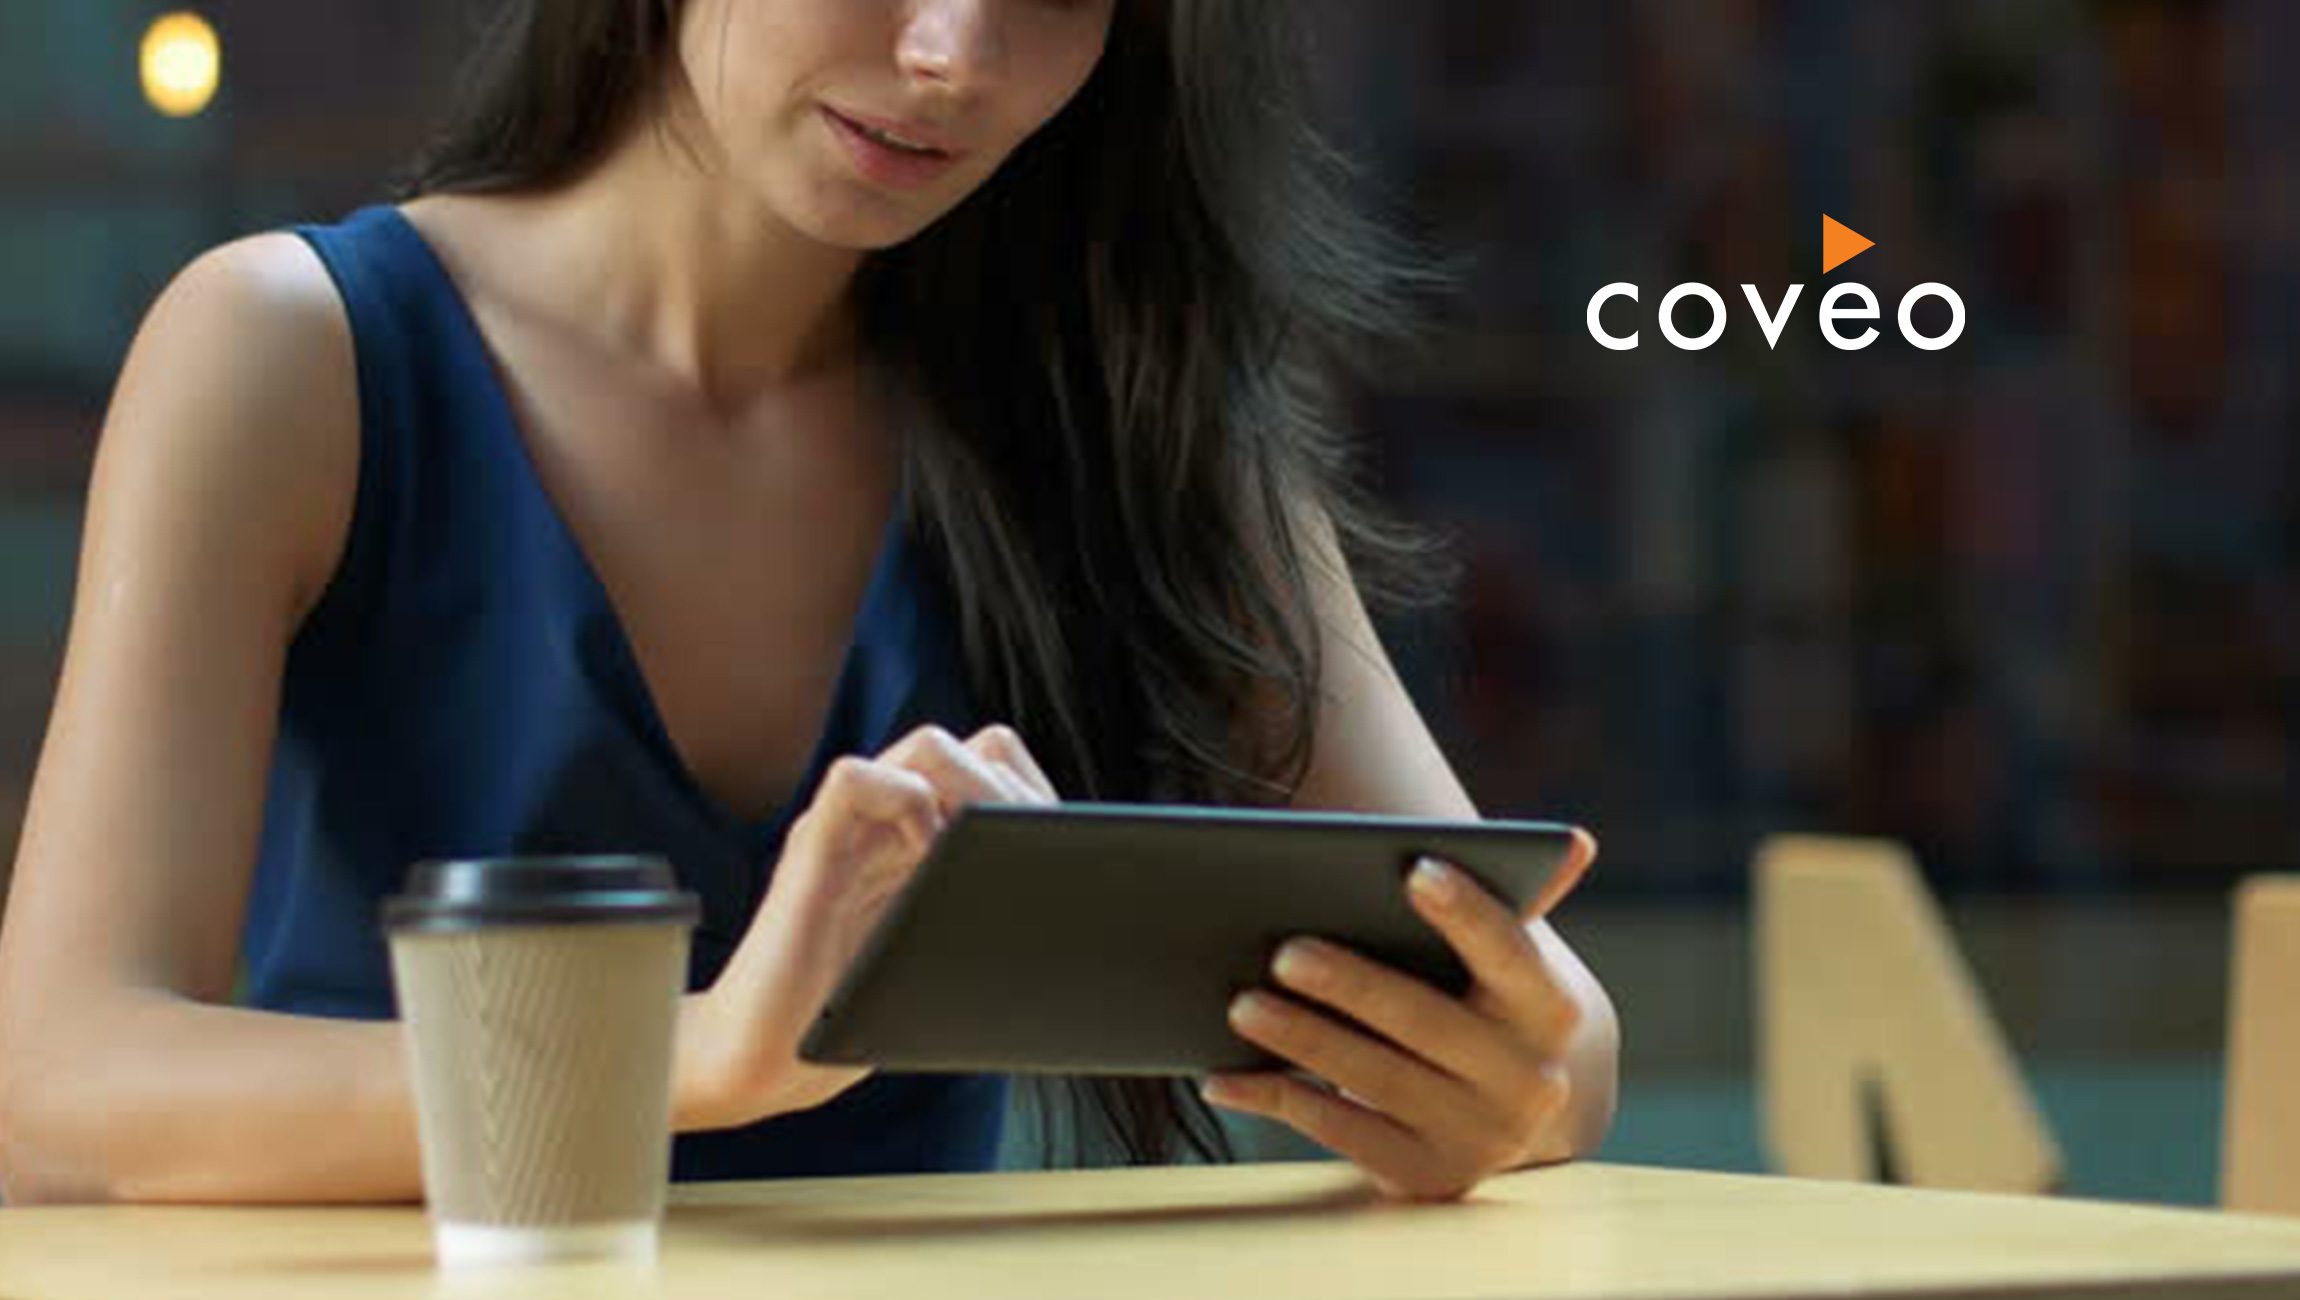 Coveo Adds eCommerce Veteran to Senior Management Team as Part of Rapid Growth Strategy